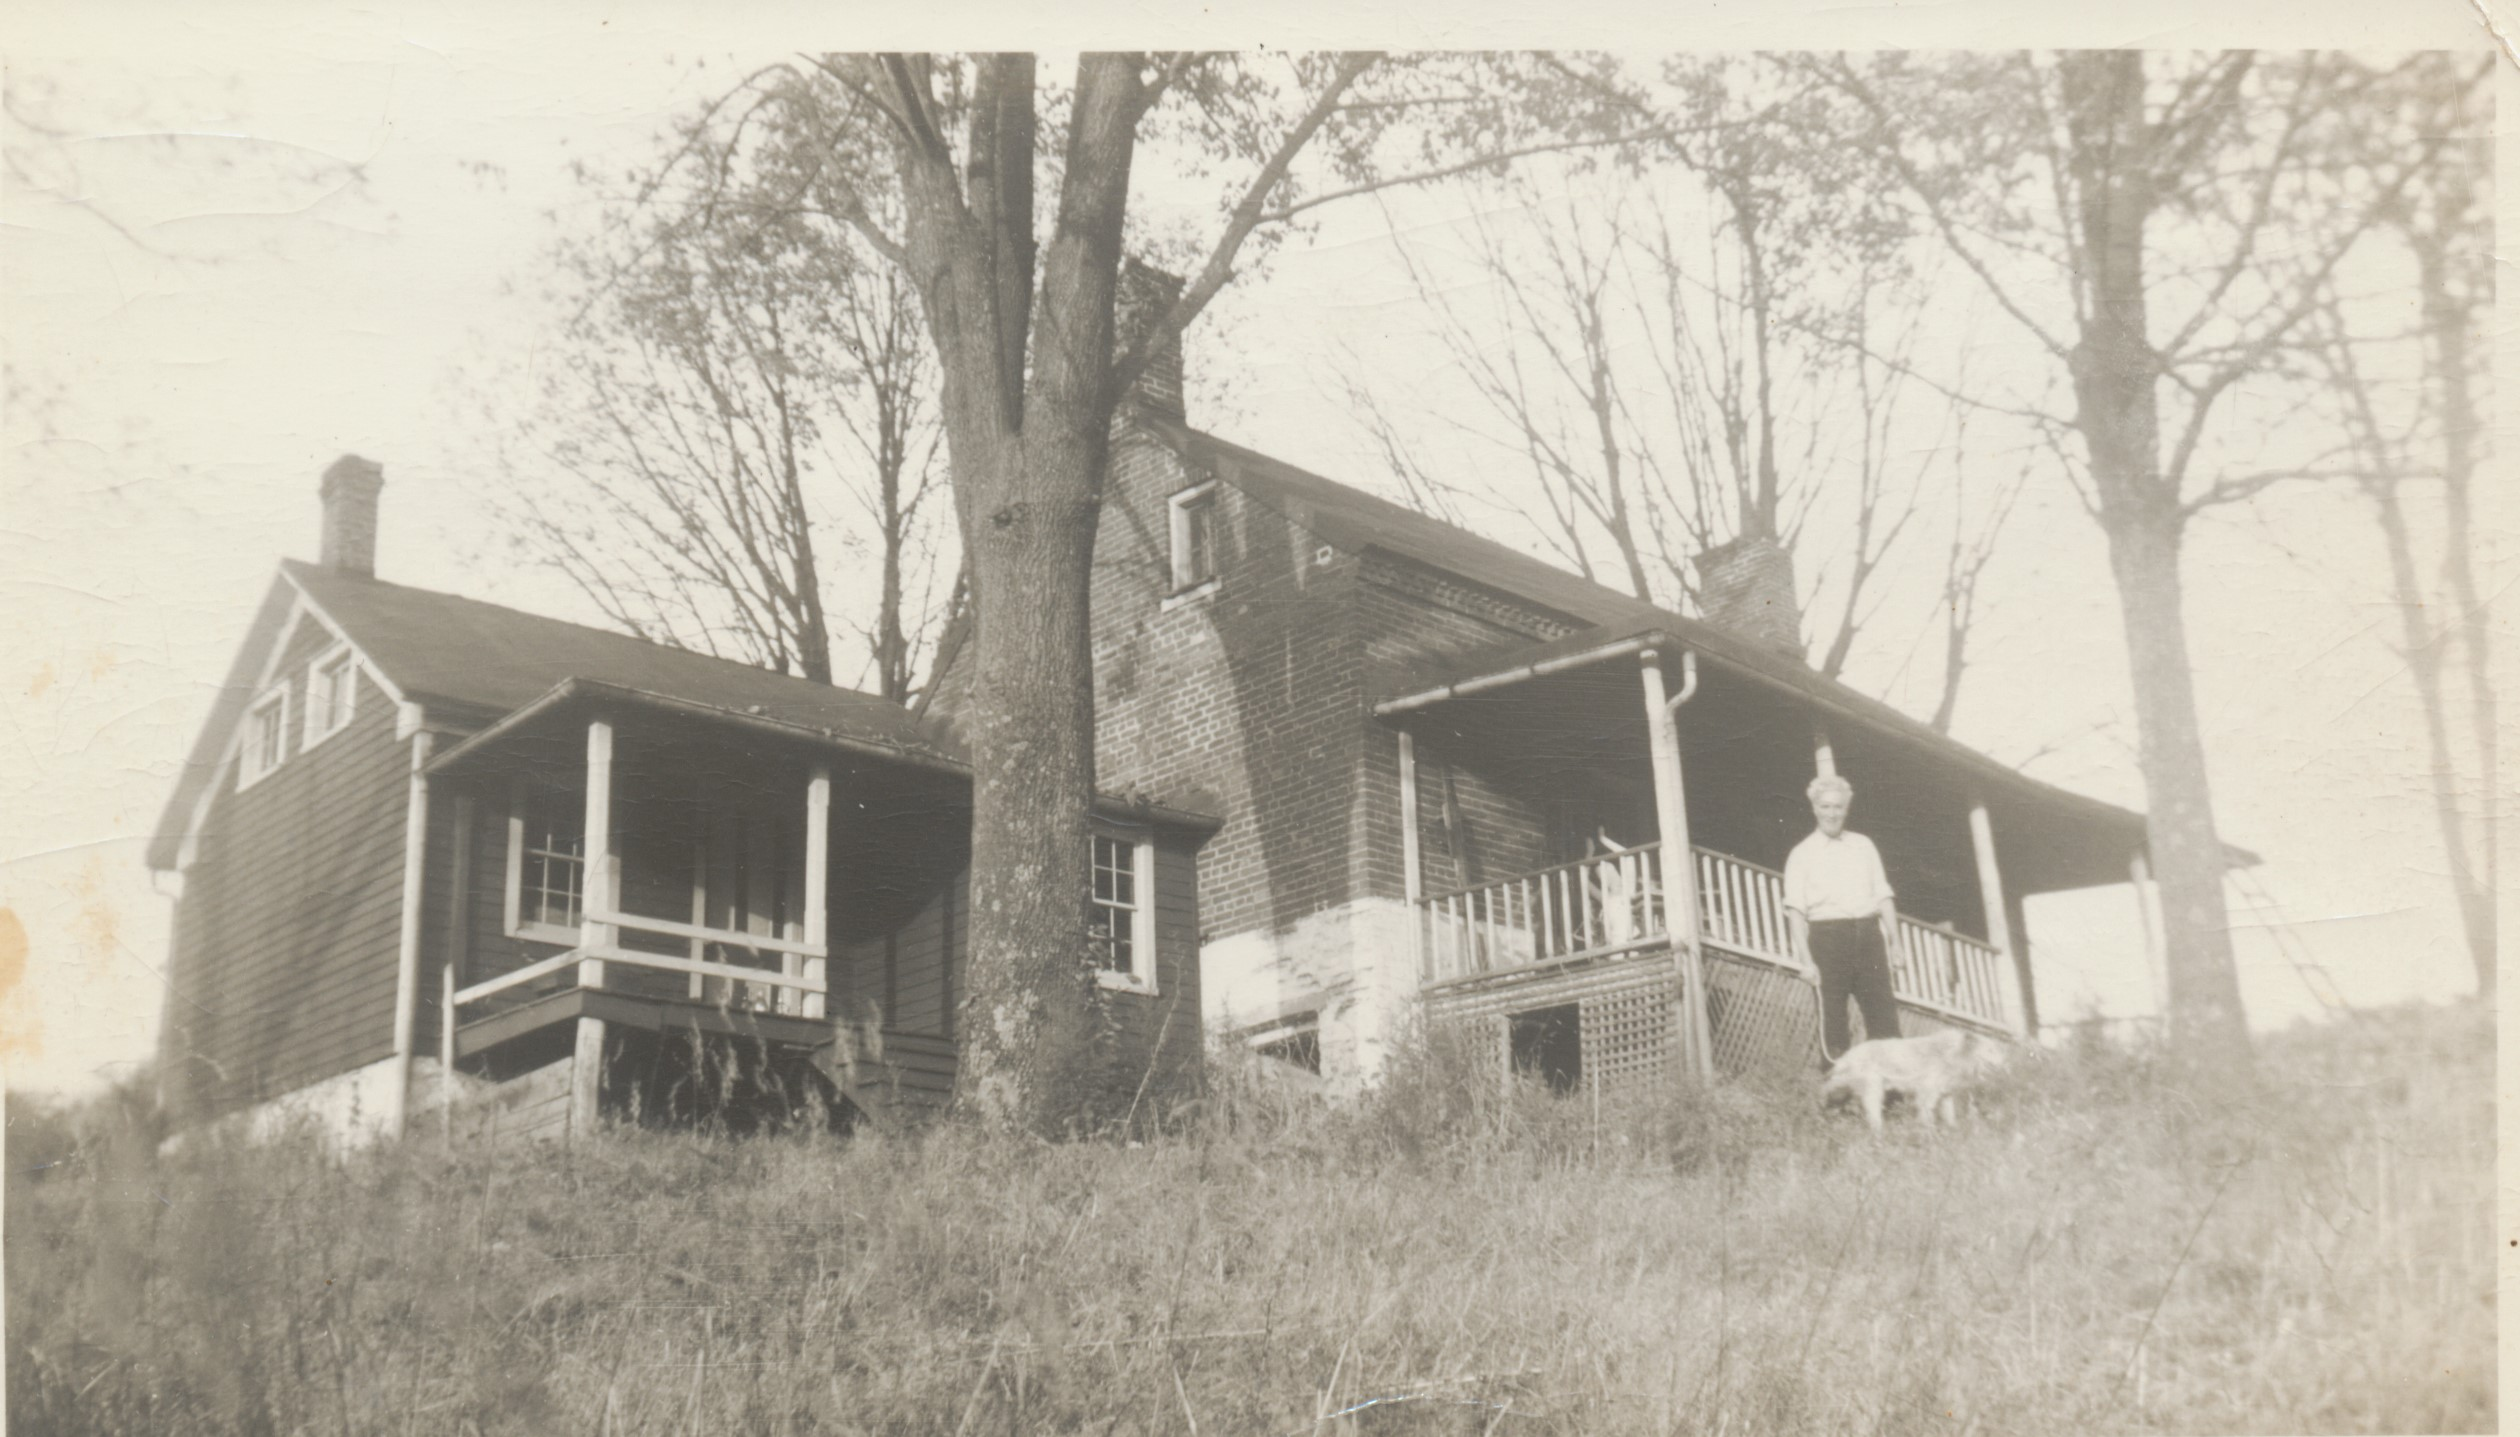 Richard Lahey, the external kitchen, and the house in fall 1940